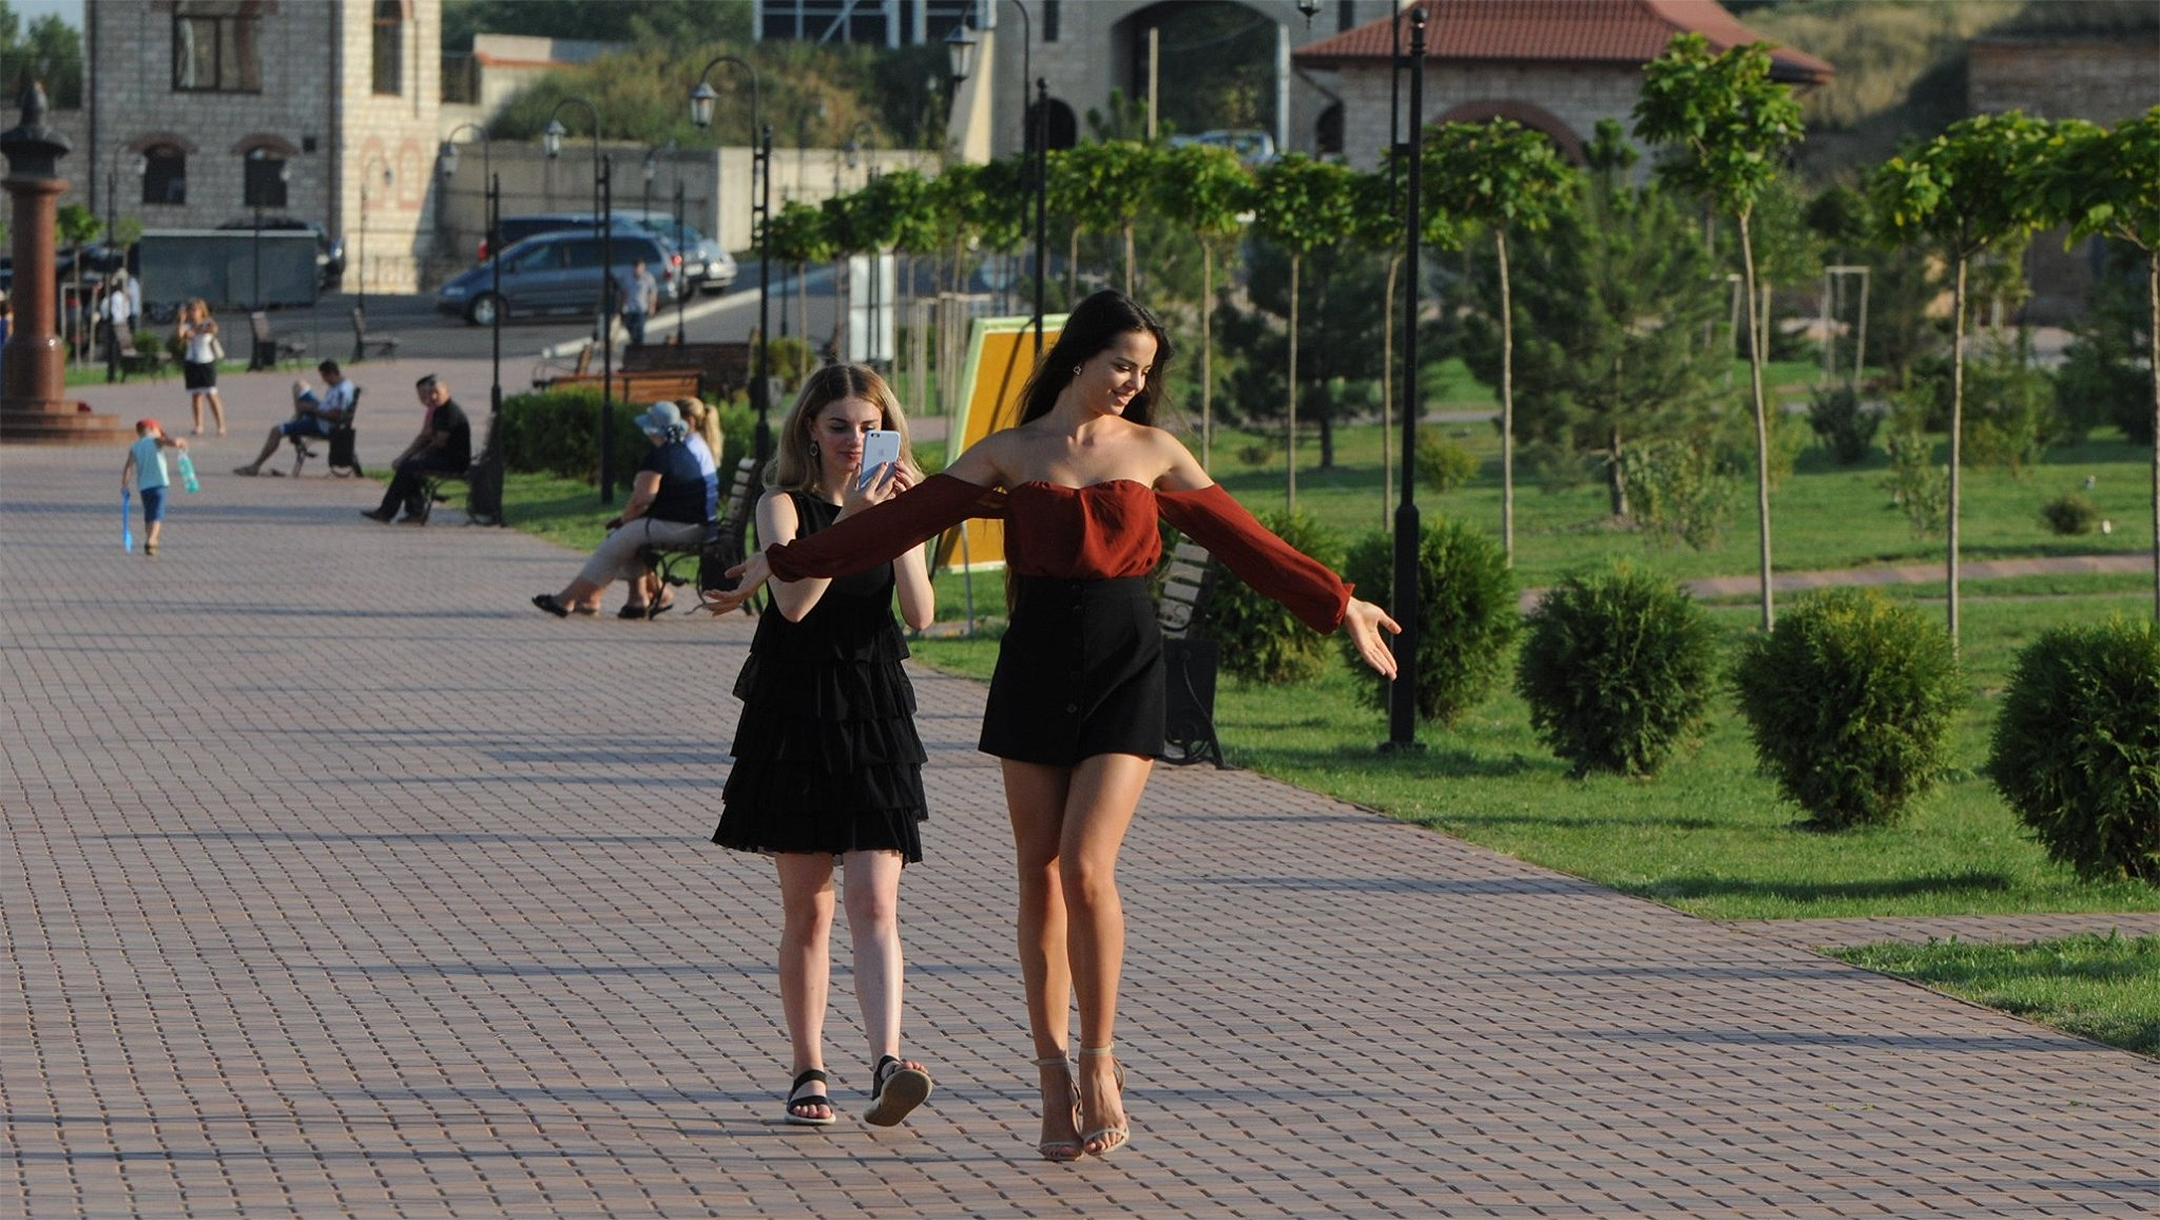 Two women visiting Bender Fort in Bender, Transnistria, on on Aug. 24, 2019. (Courtesy of Roman Yanushevsky/Channel 9)